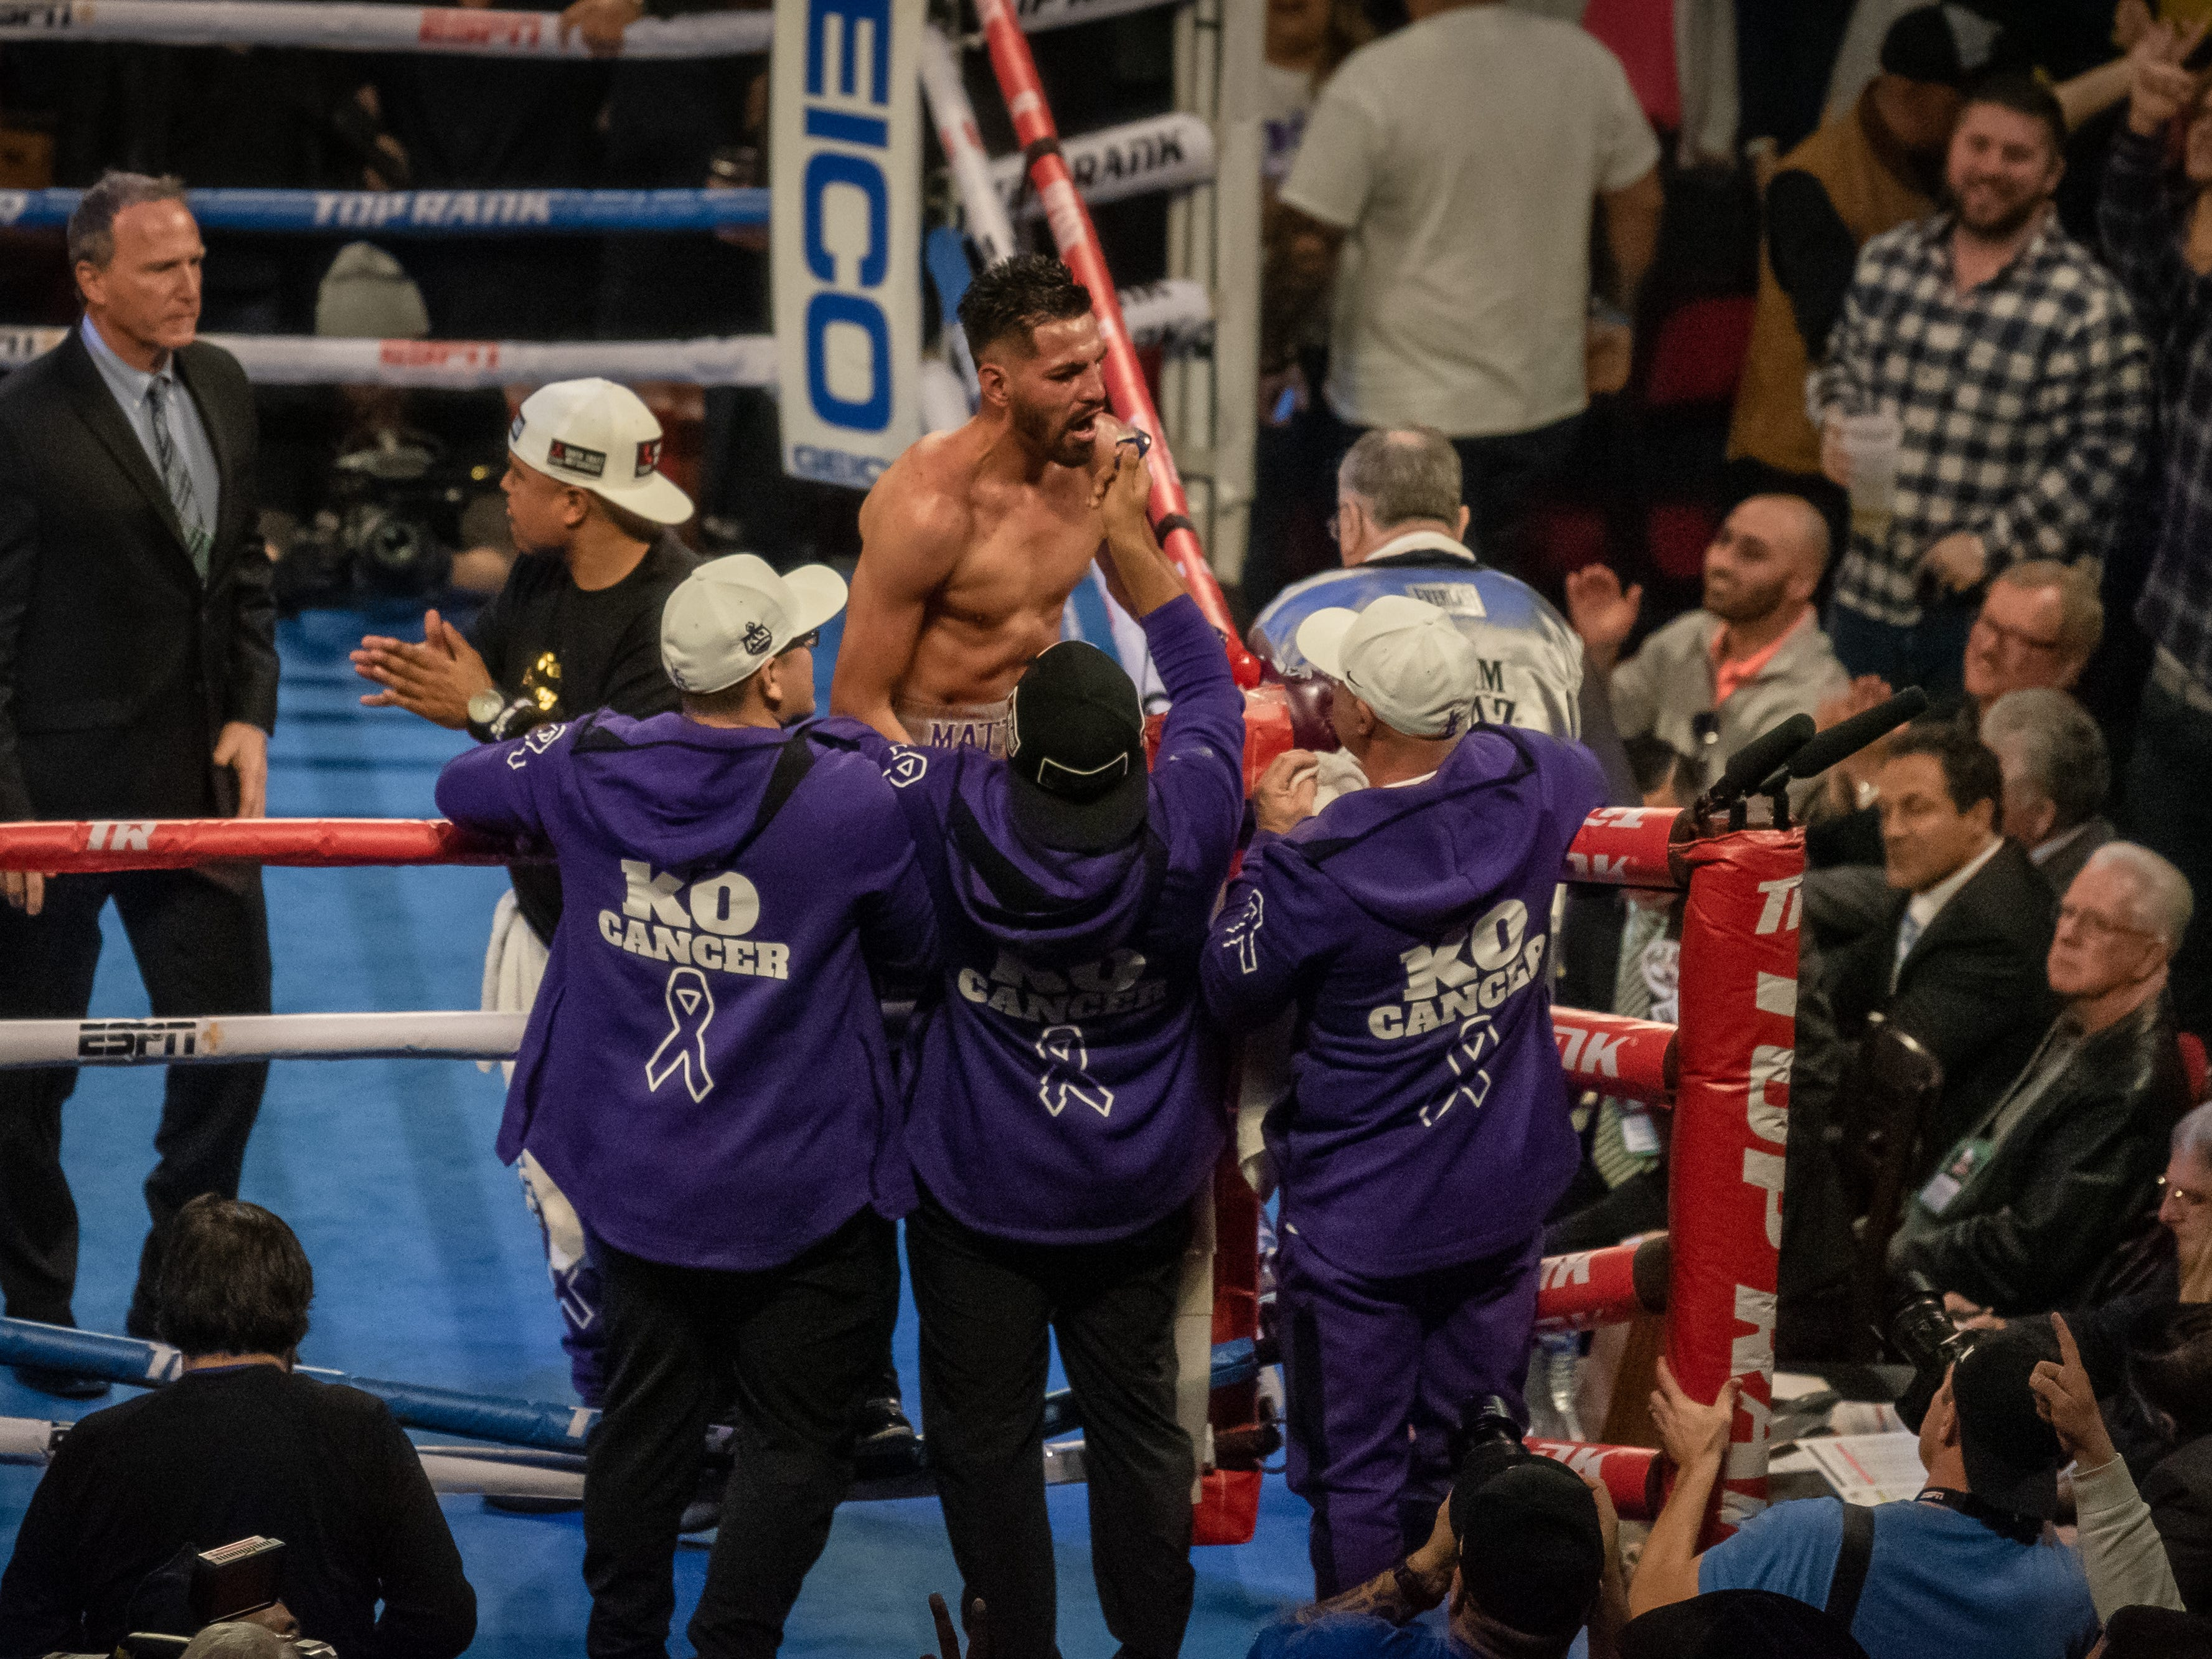 Jose Ramirez (24-0, 16 KOs) claimed victory over Jose Zepeda (30-2, 25 KOs) on Sunday at Fresno's Save Mart Arena. Ramirez, of Avenal, won in a majority decision, with judge Ray Danseco scoring it even at 114-114.